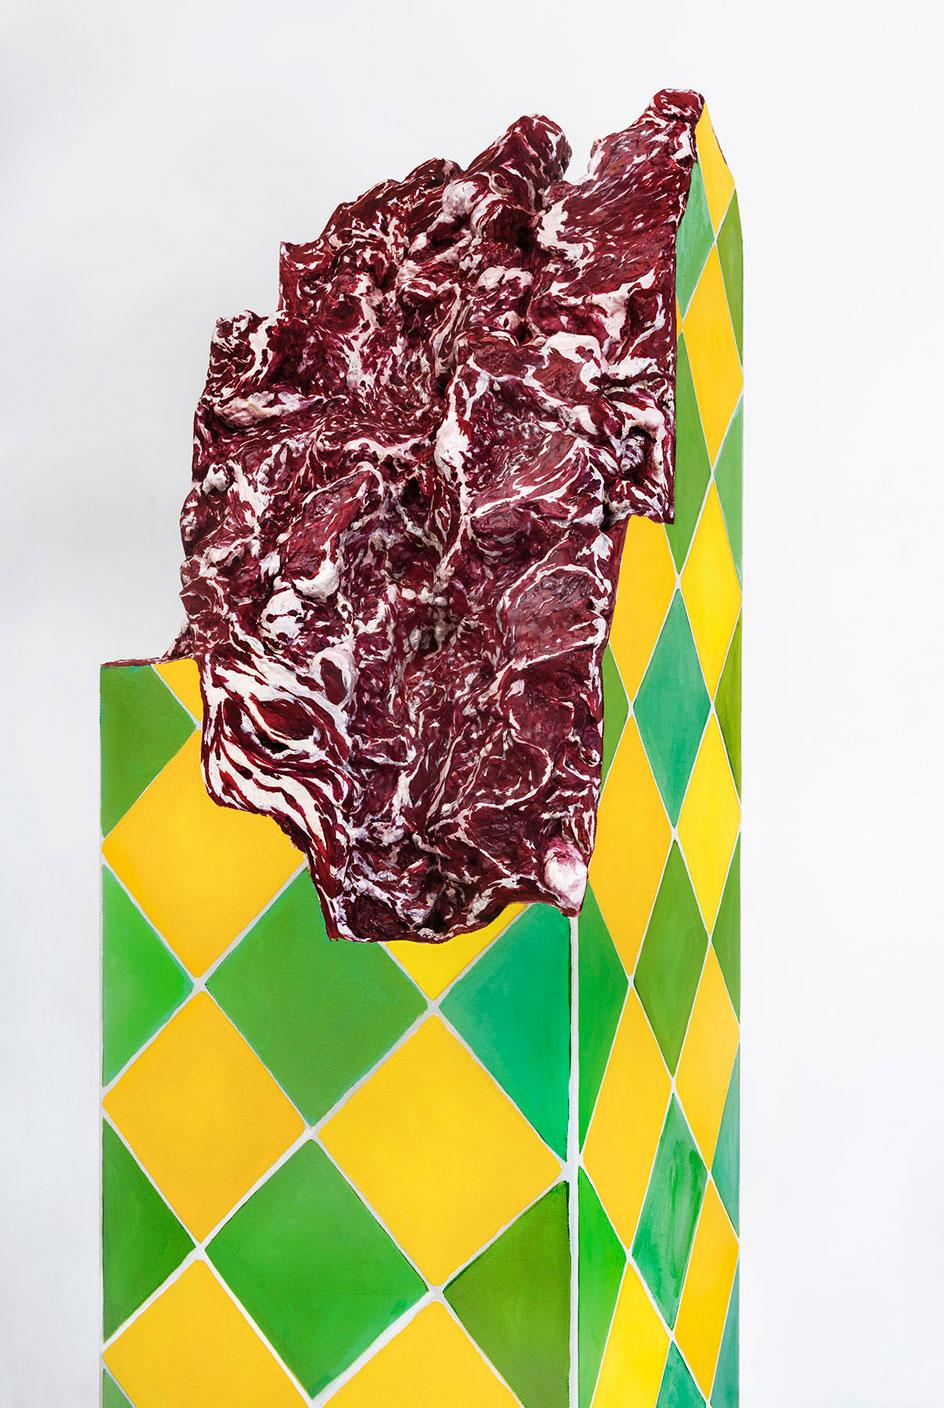 Adriana Varejão,Ruína Brasilis [Brasilis Ruin], 2021.Oil on canvas and polyurethane with aluminum support a sculpture in the colours of the Brazilian flag with meat protruding from within